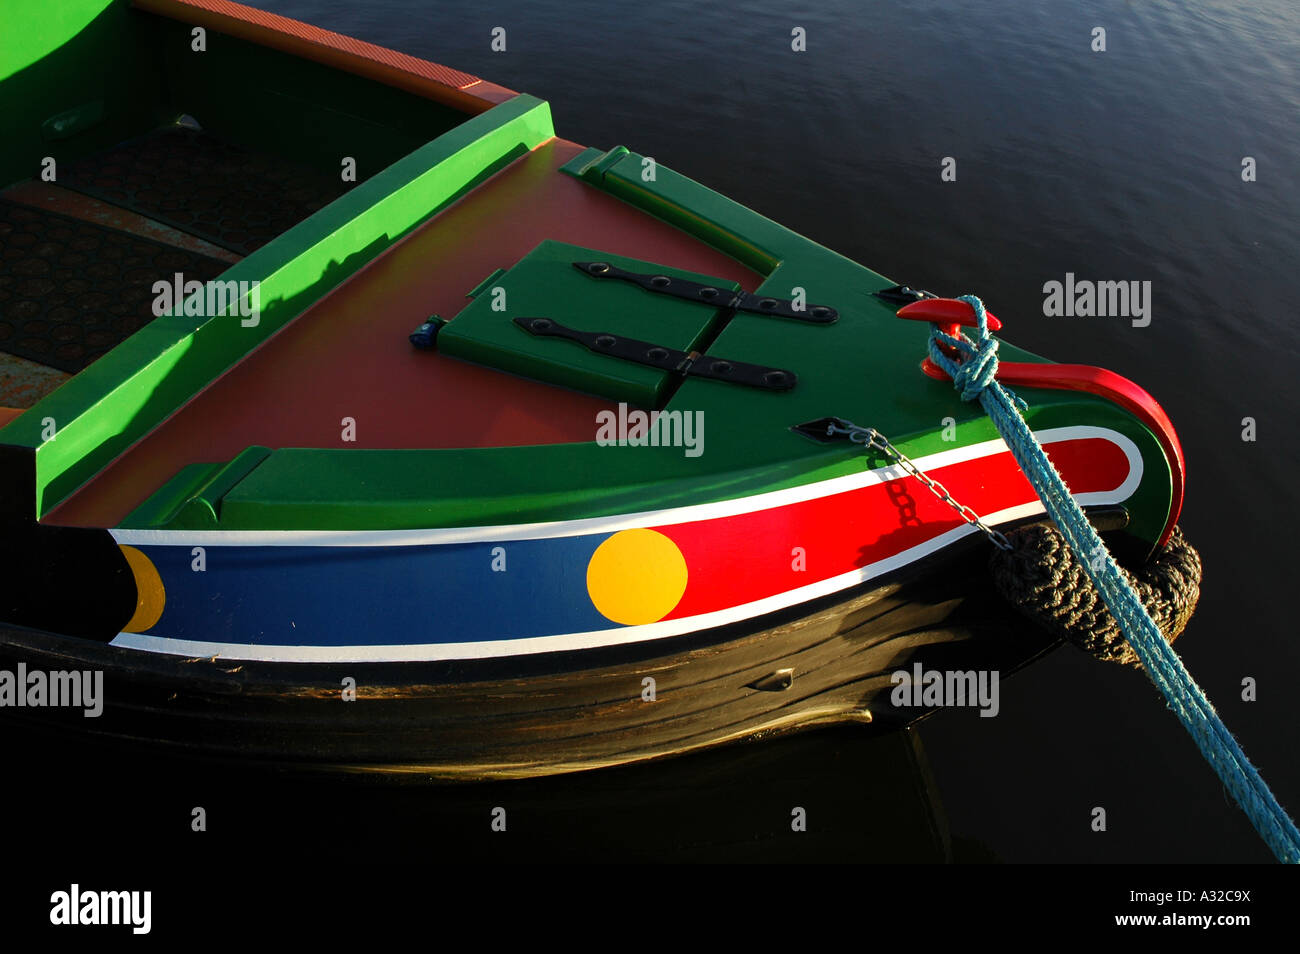 Josher style bow of a British narrowboat painted in the classic colours of green red blue and yellow - Stock Image